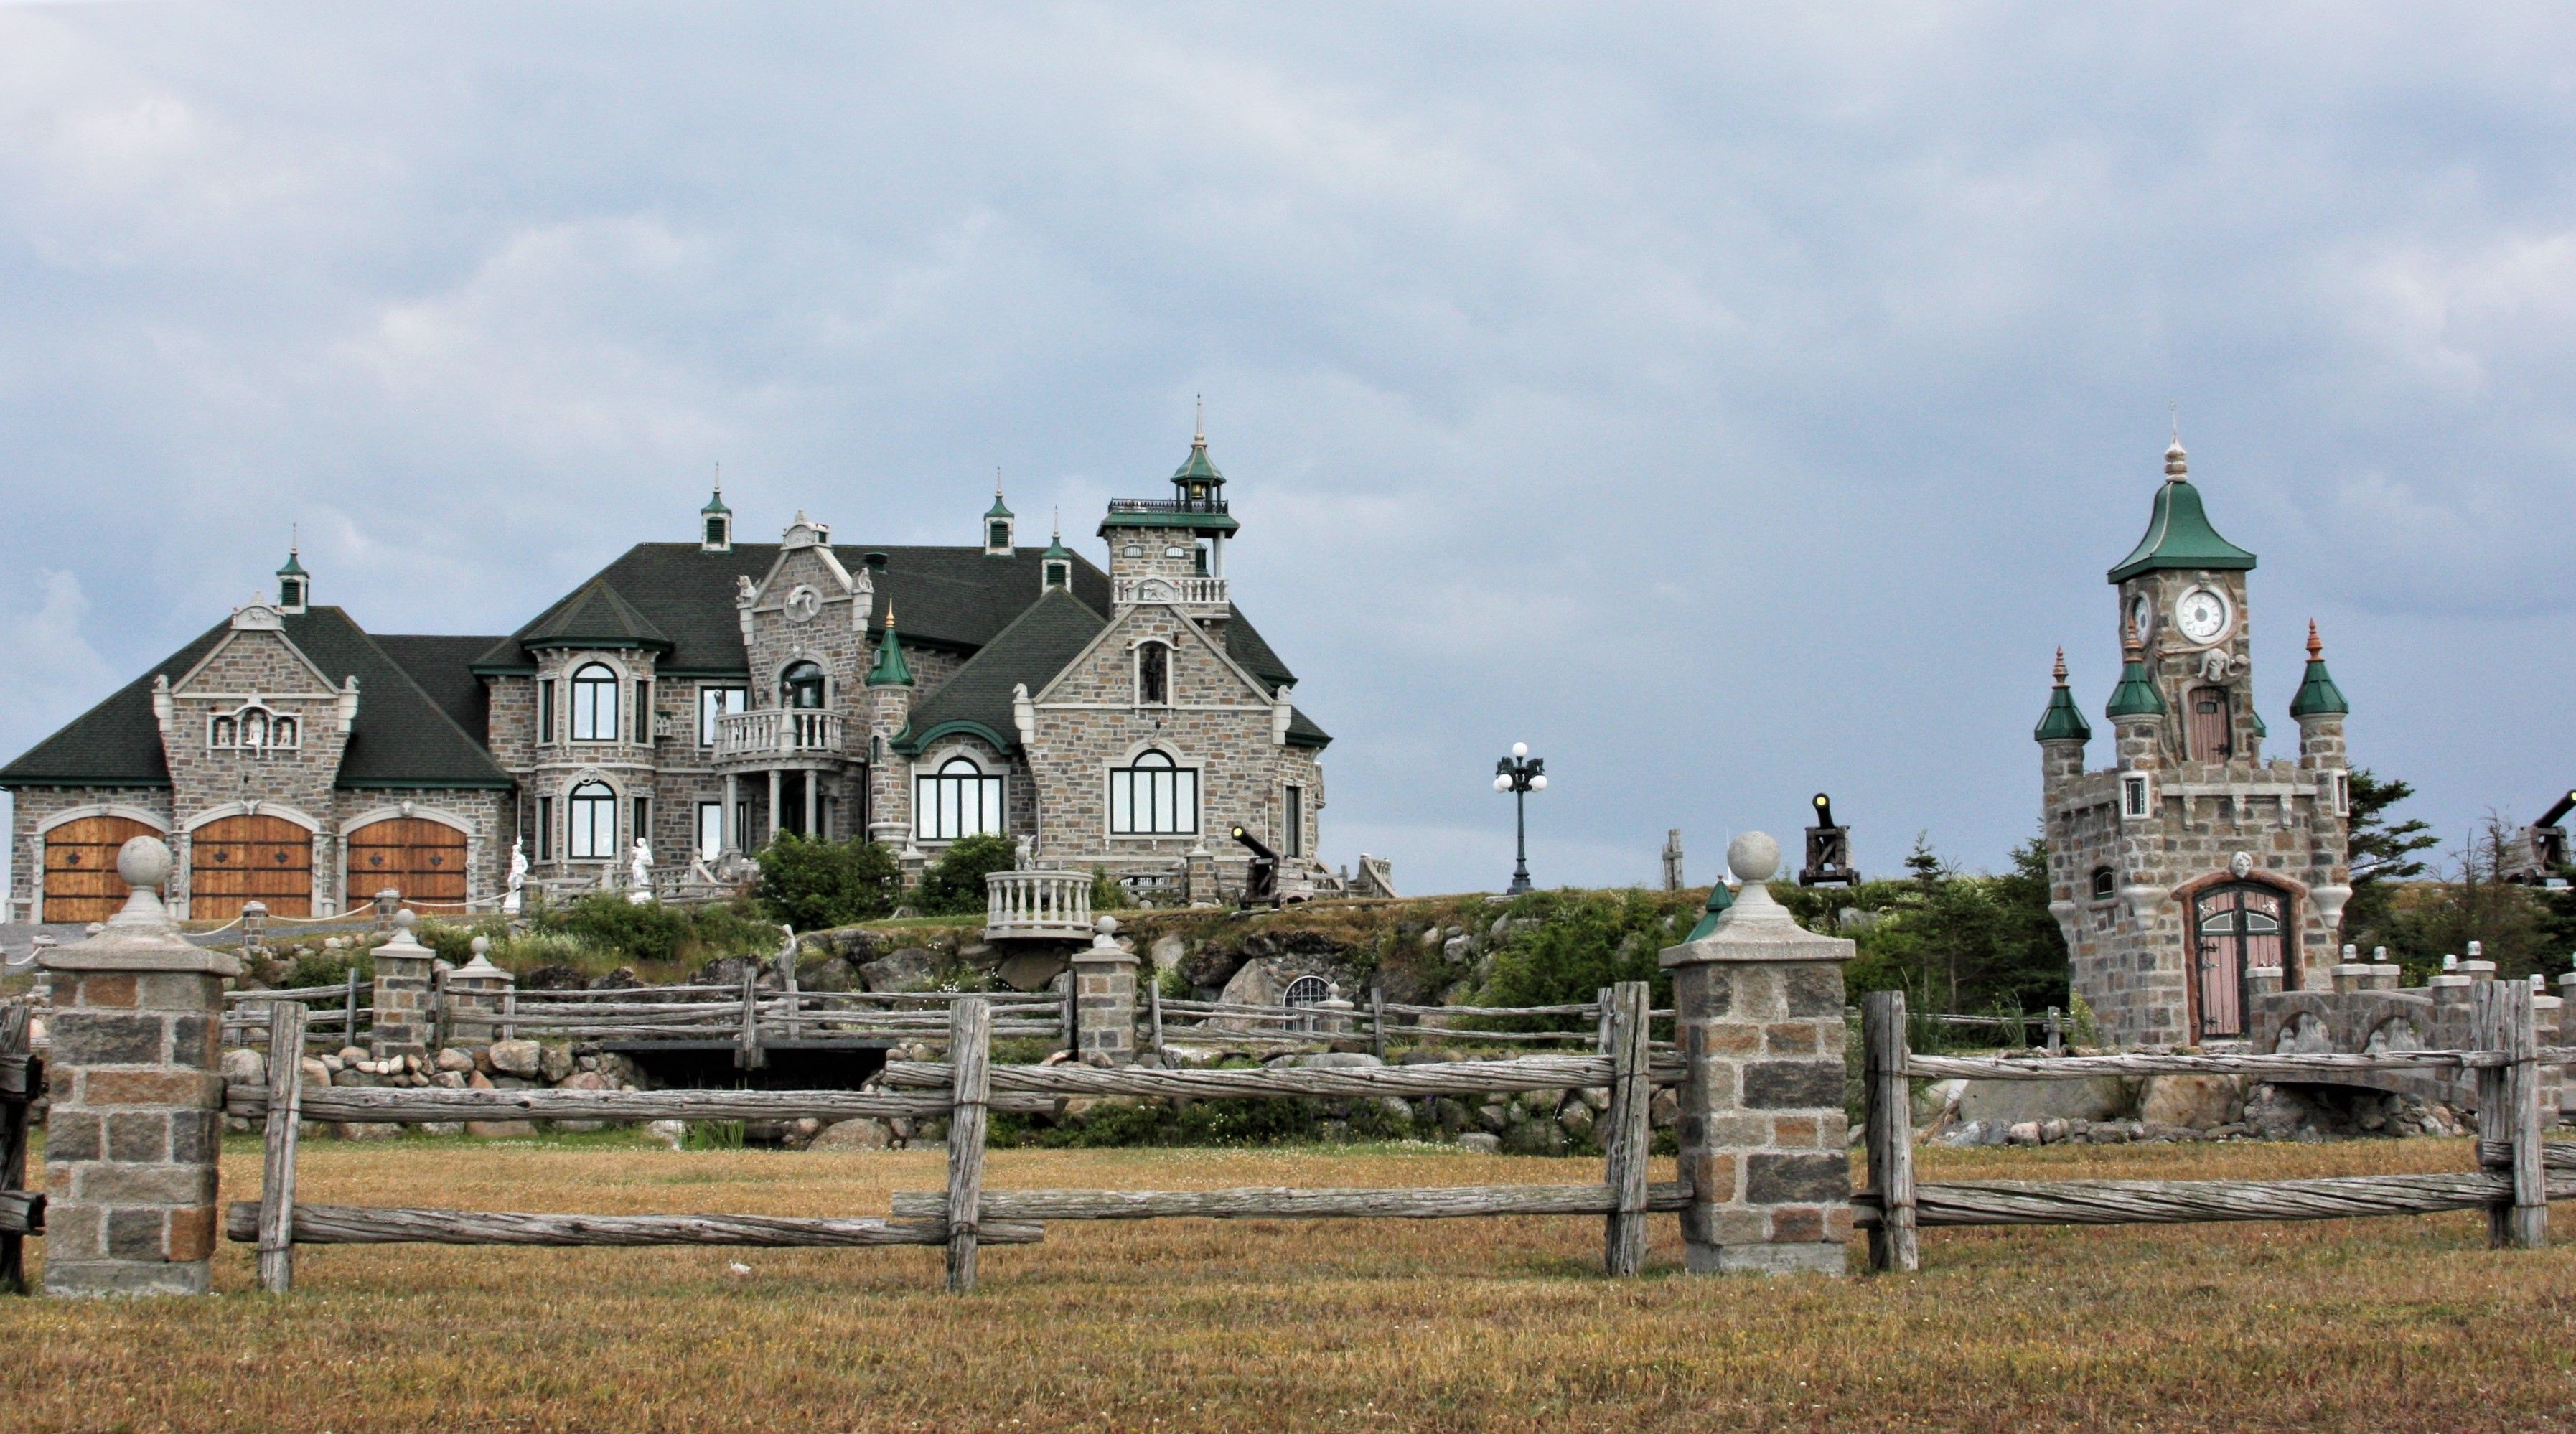 This Is Someone S House On Gaspe Peninsula Quebec Canada 07